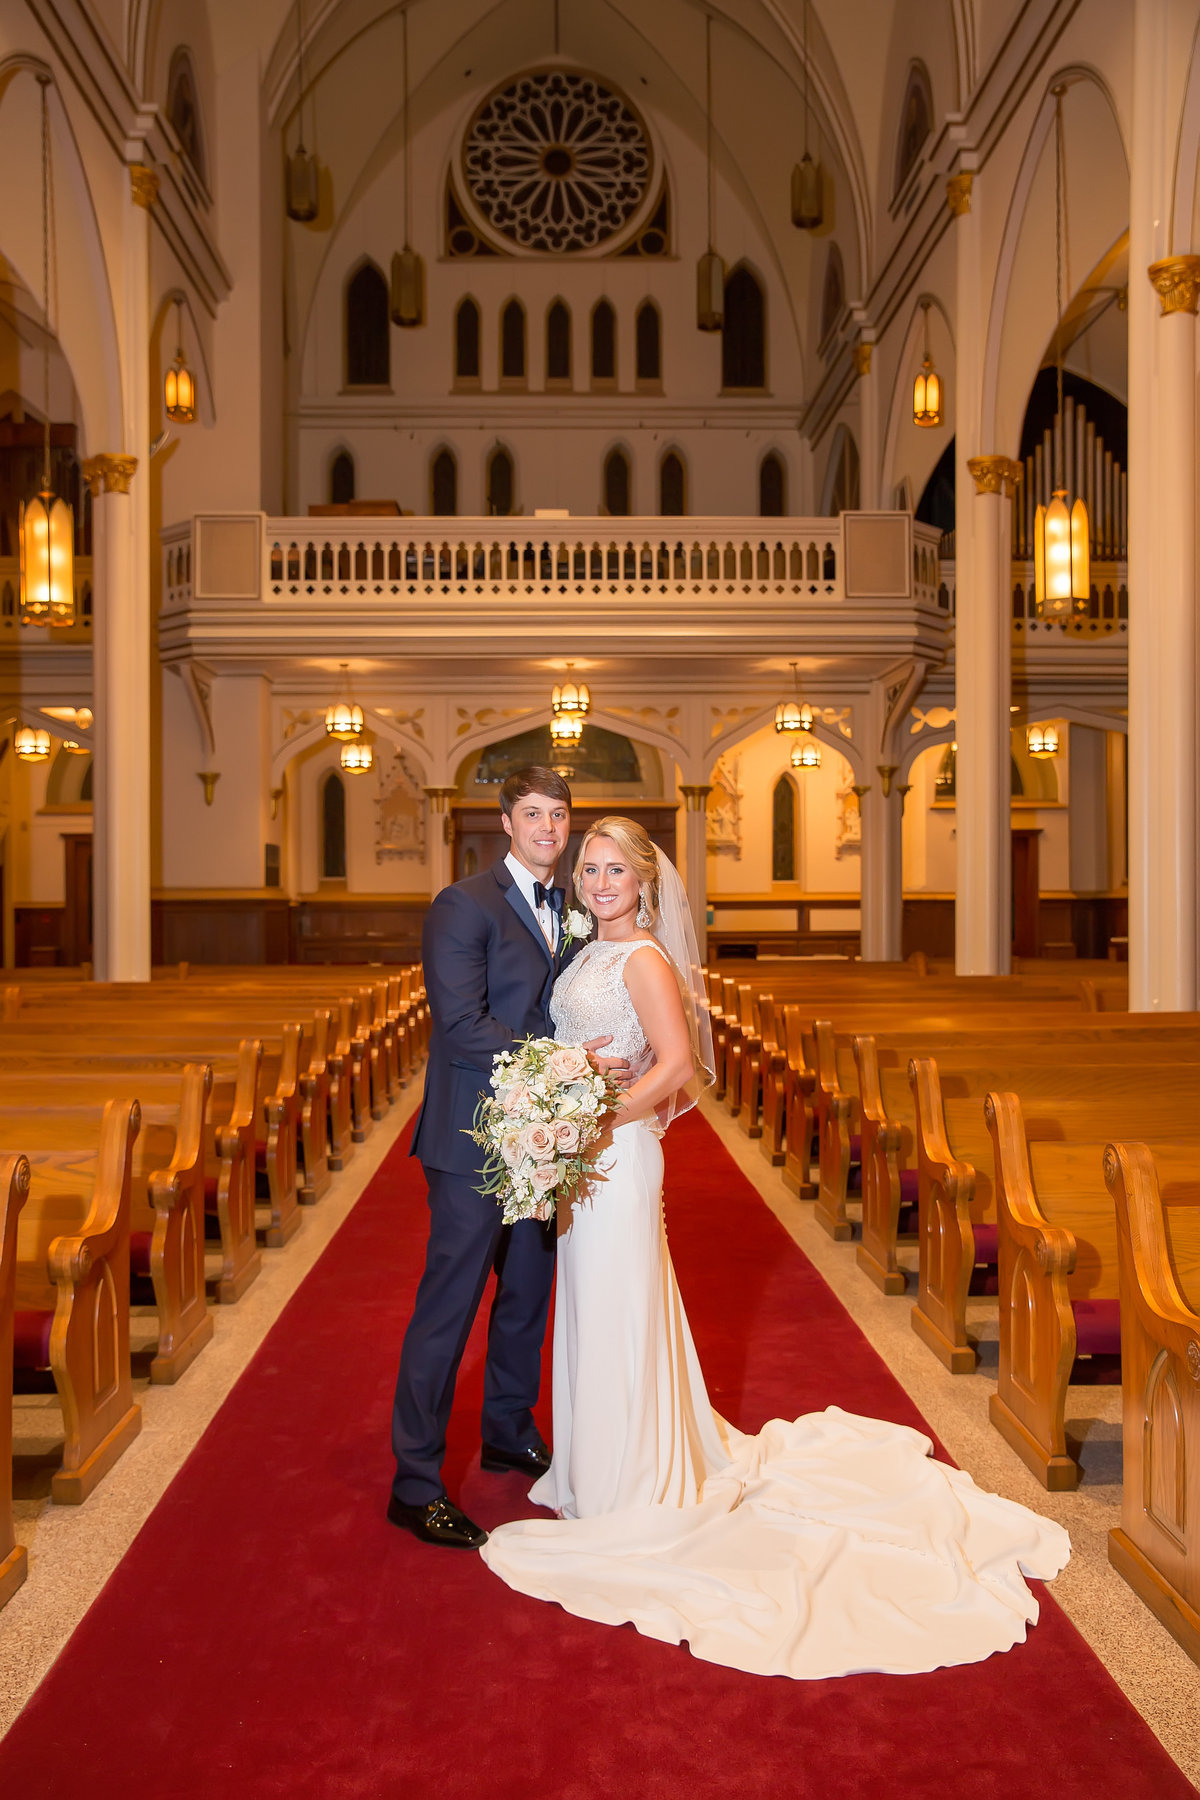 Kayce-Stork-Photography-Biloxi-Wedding-Photographers70